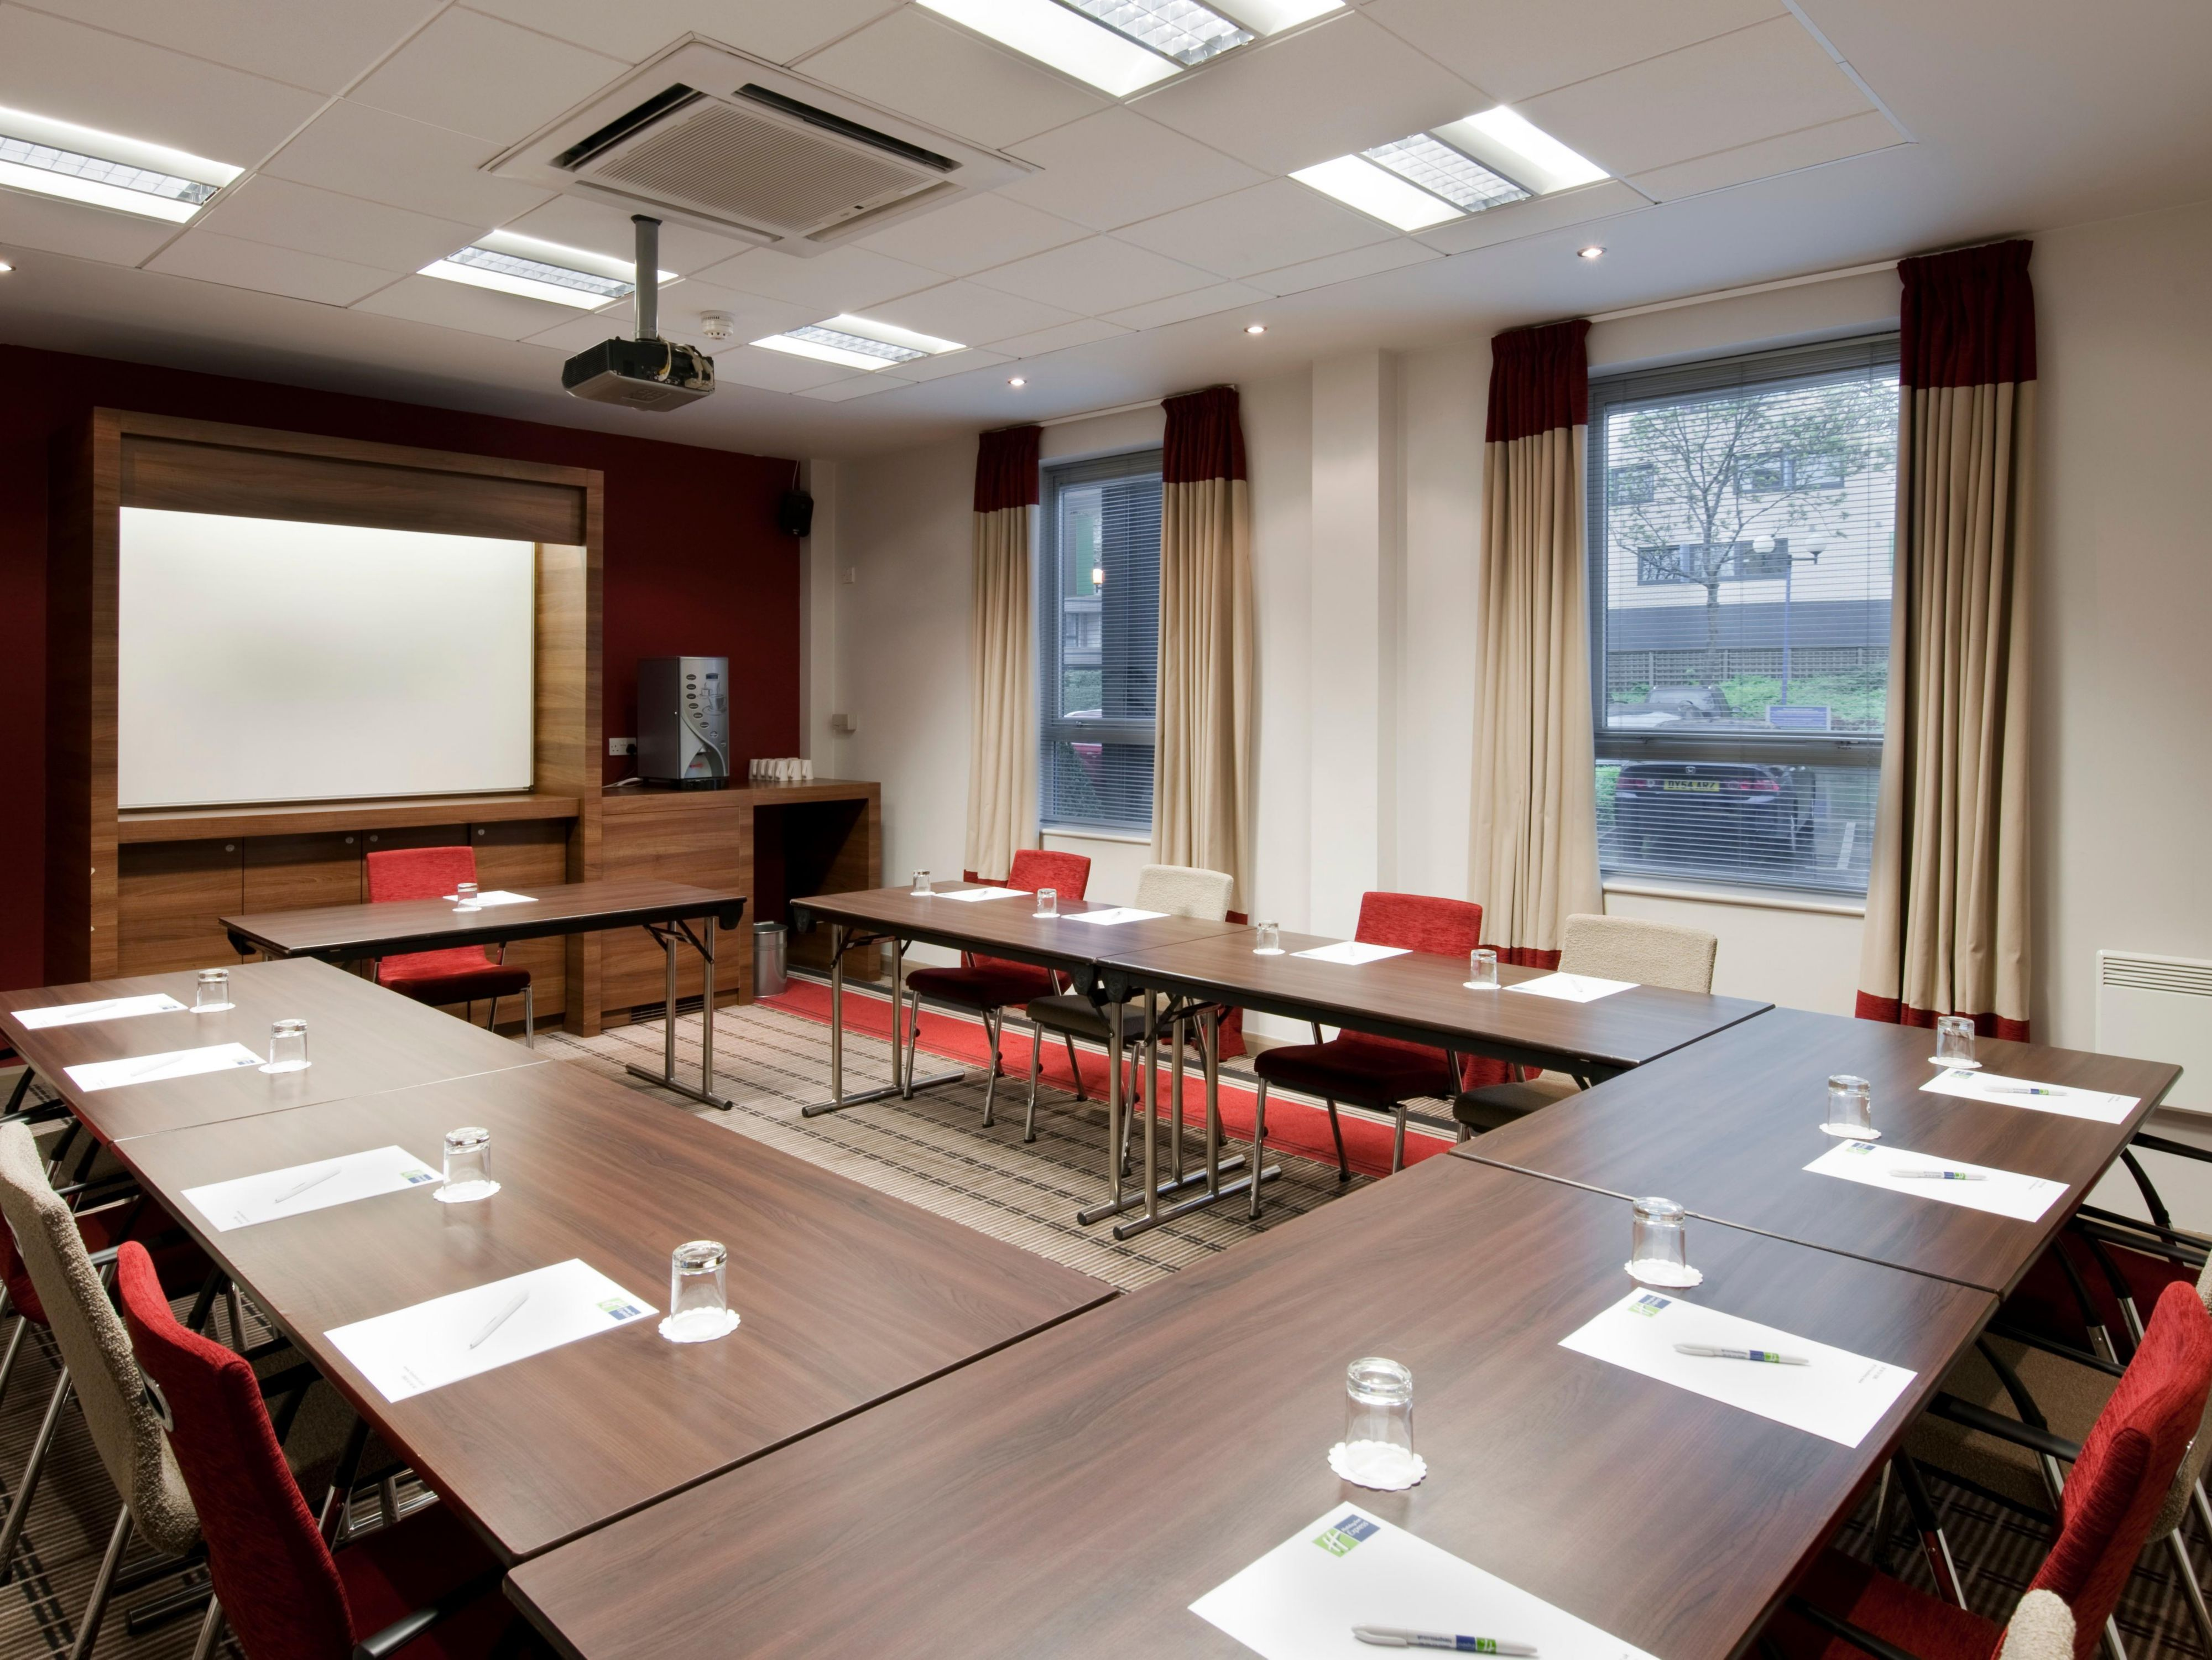 Modern meeting rooms at Holiday Inn Express Leeds City Centre